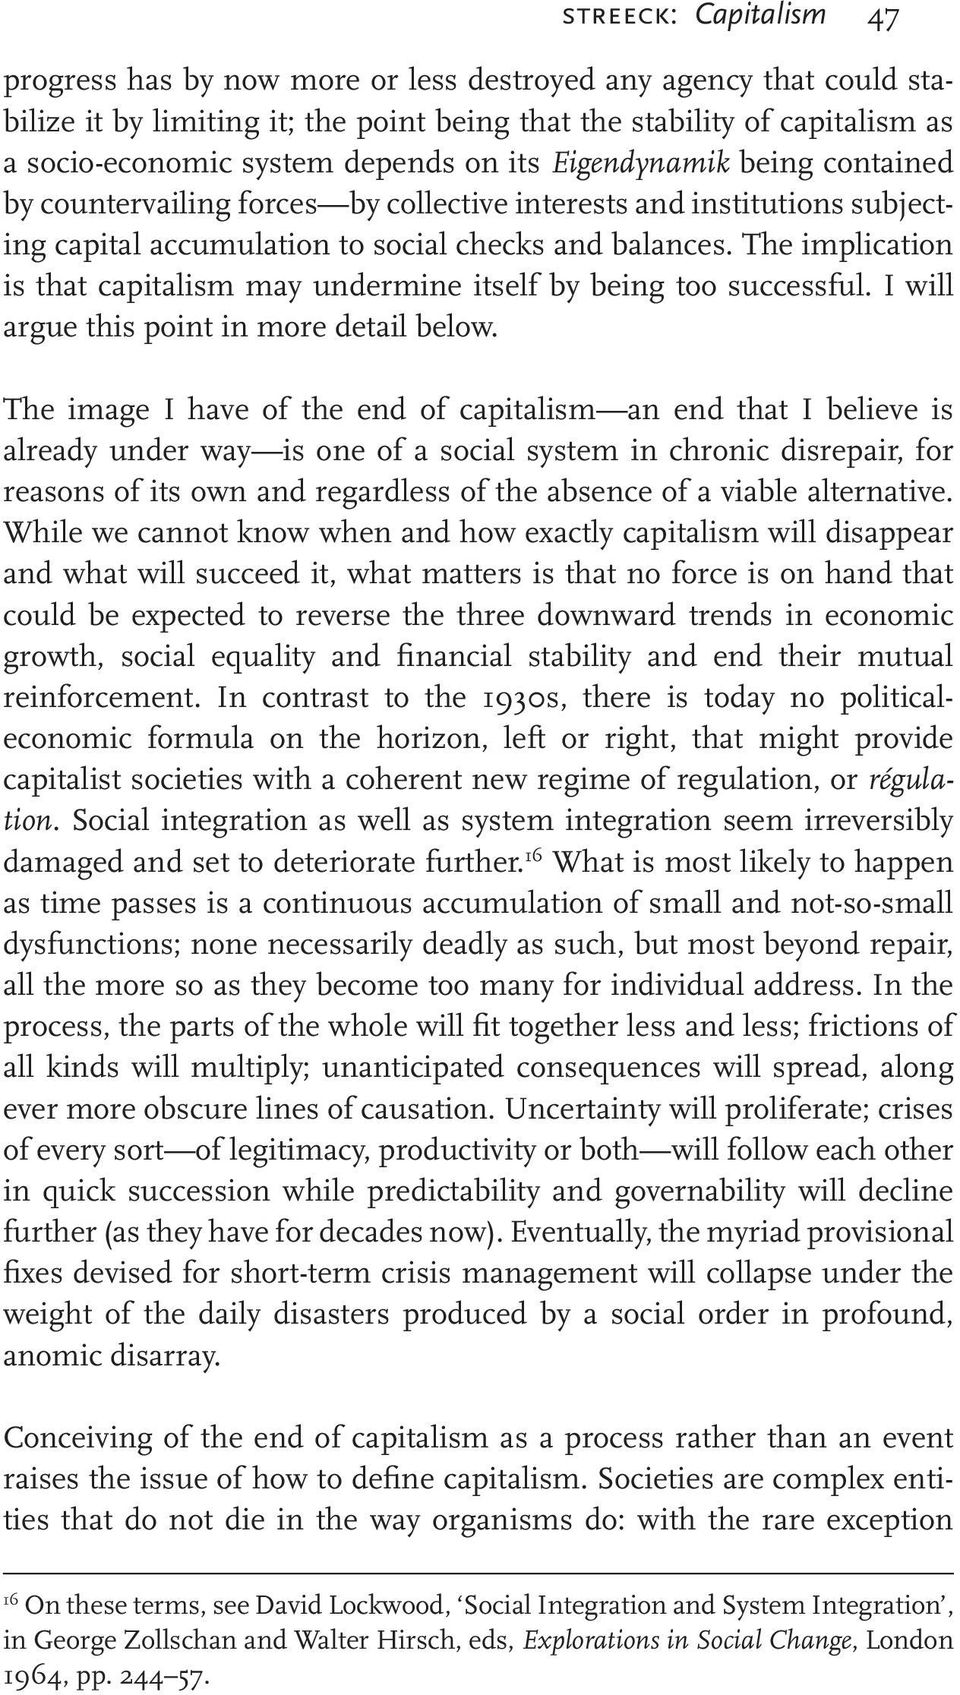 The implication is that capitalism may undermine itself by being too successful. I will argue this point in more detail below.